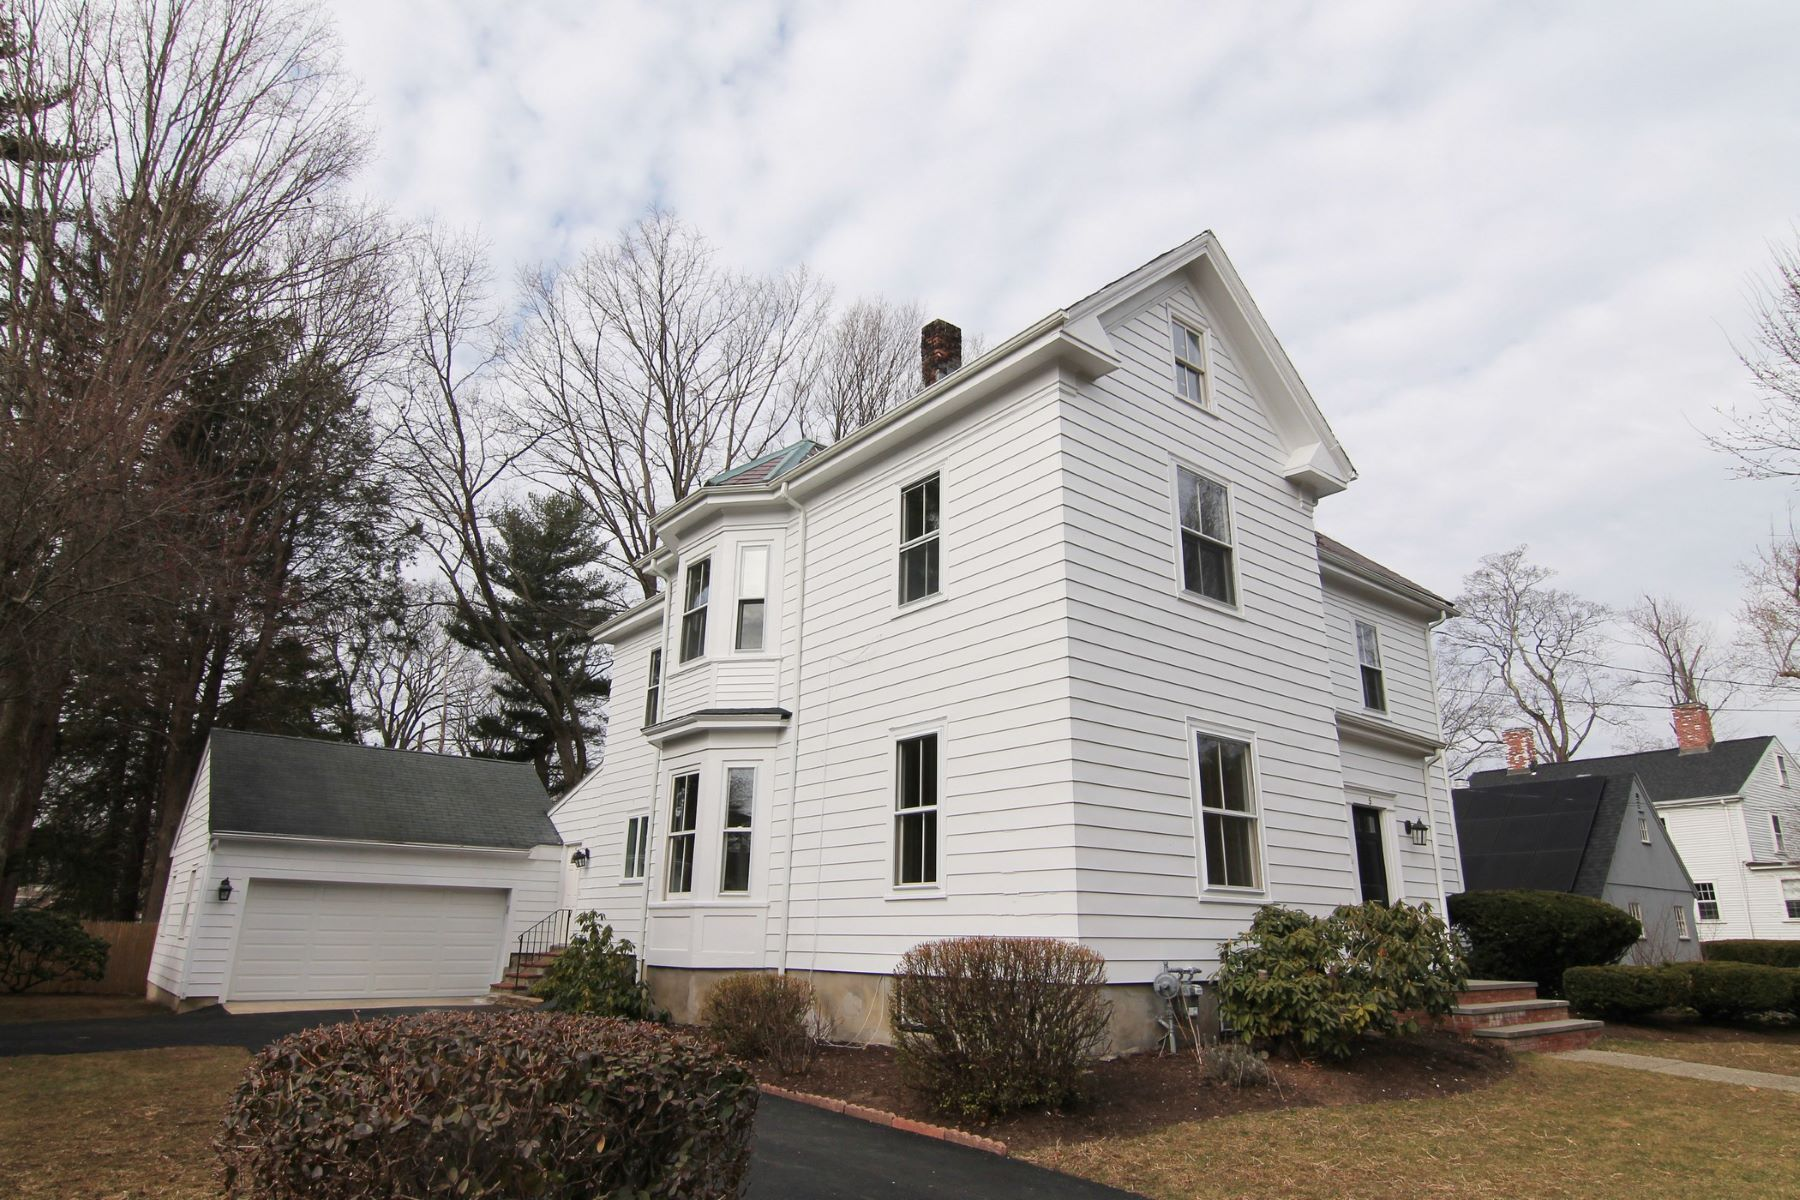 Single Family Homes for Active at 5 Parker Street Lexington, Massachusetts 02420 United States